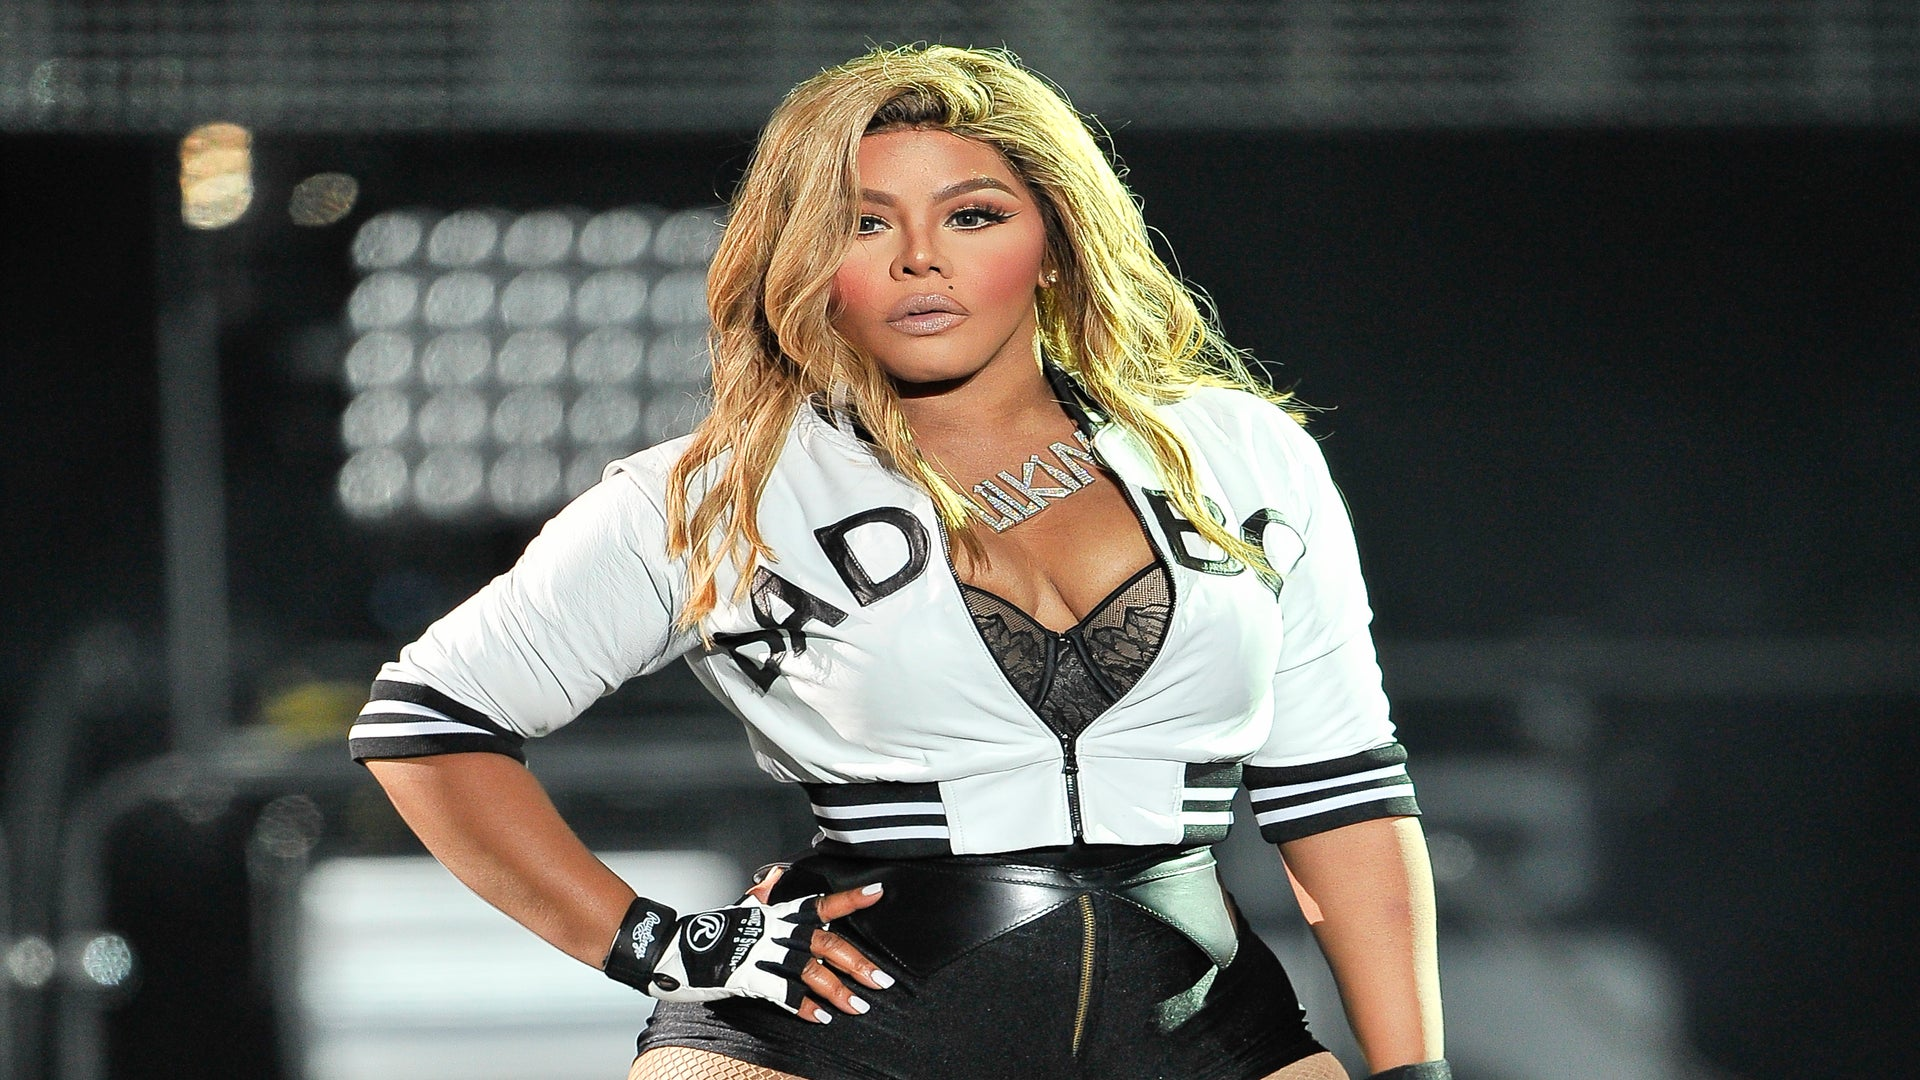 Lil Kim: 'I'm A Spanish Girl Trapped In A Black Girl's Body'